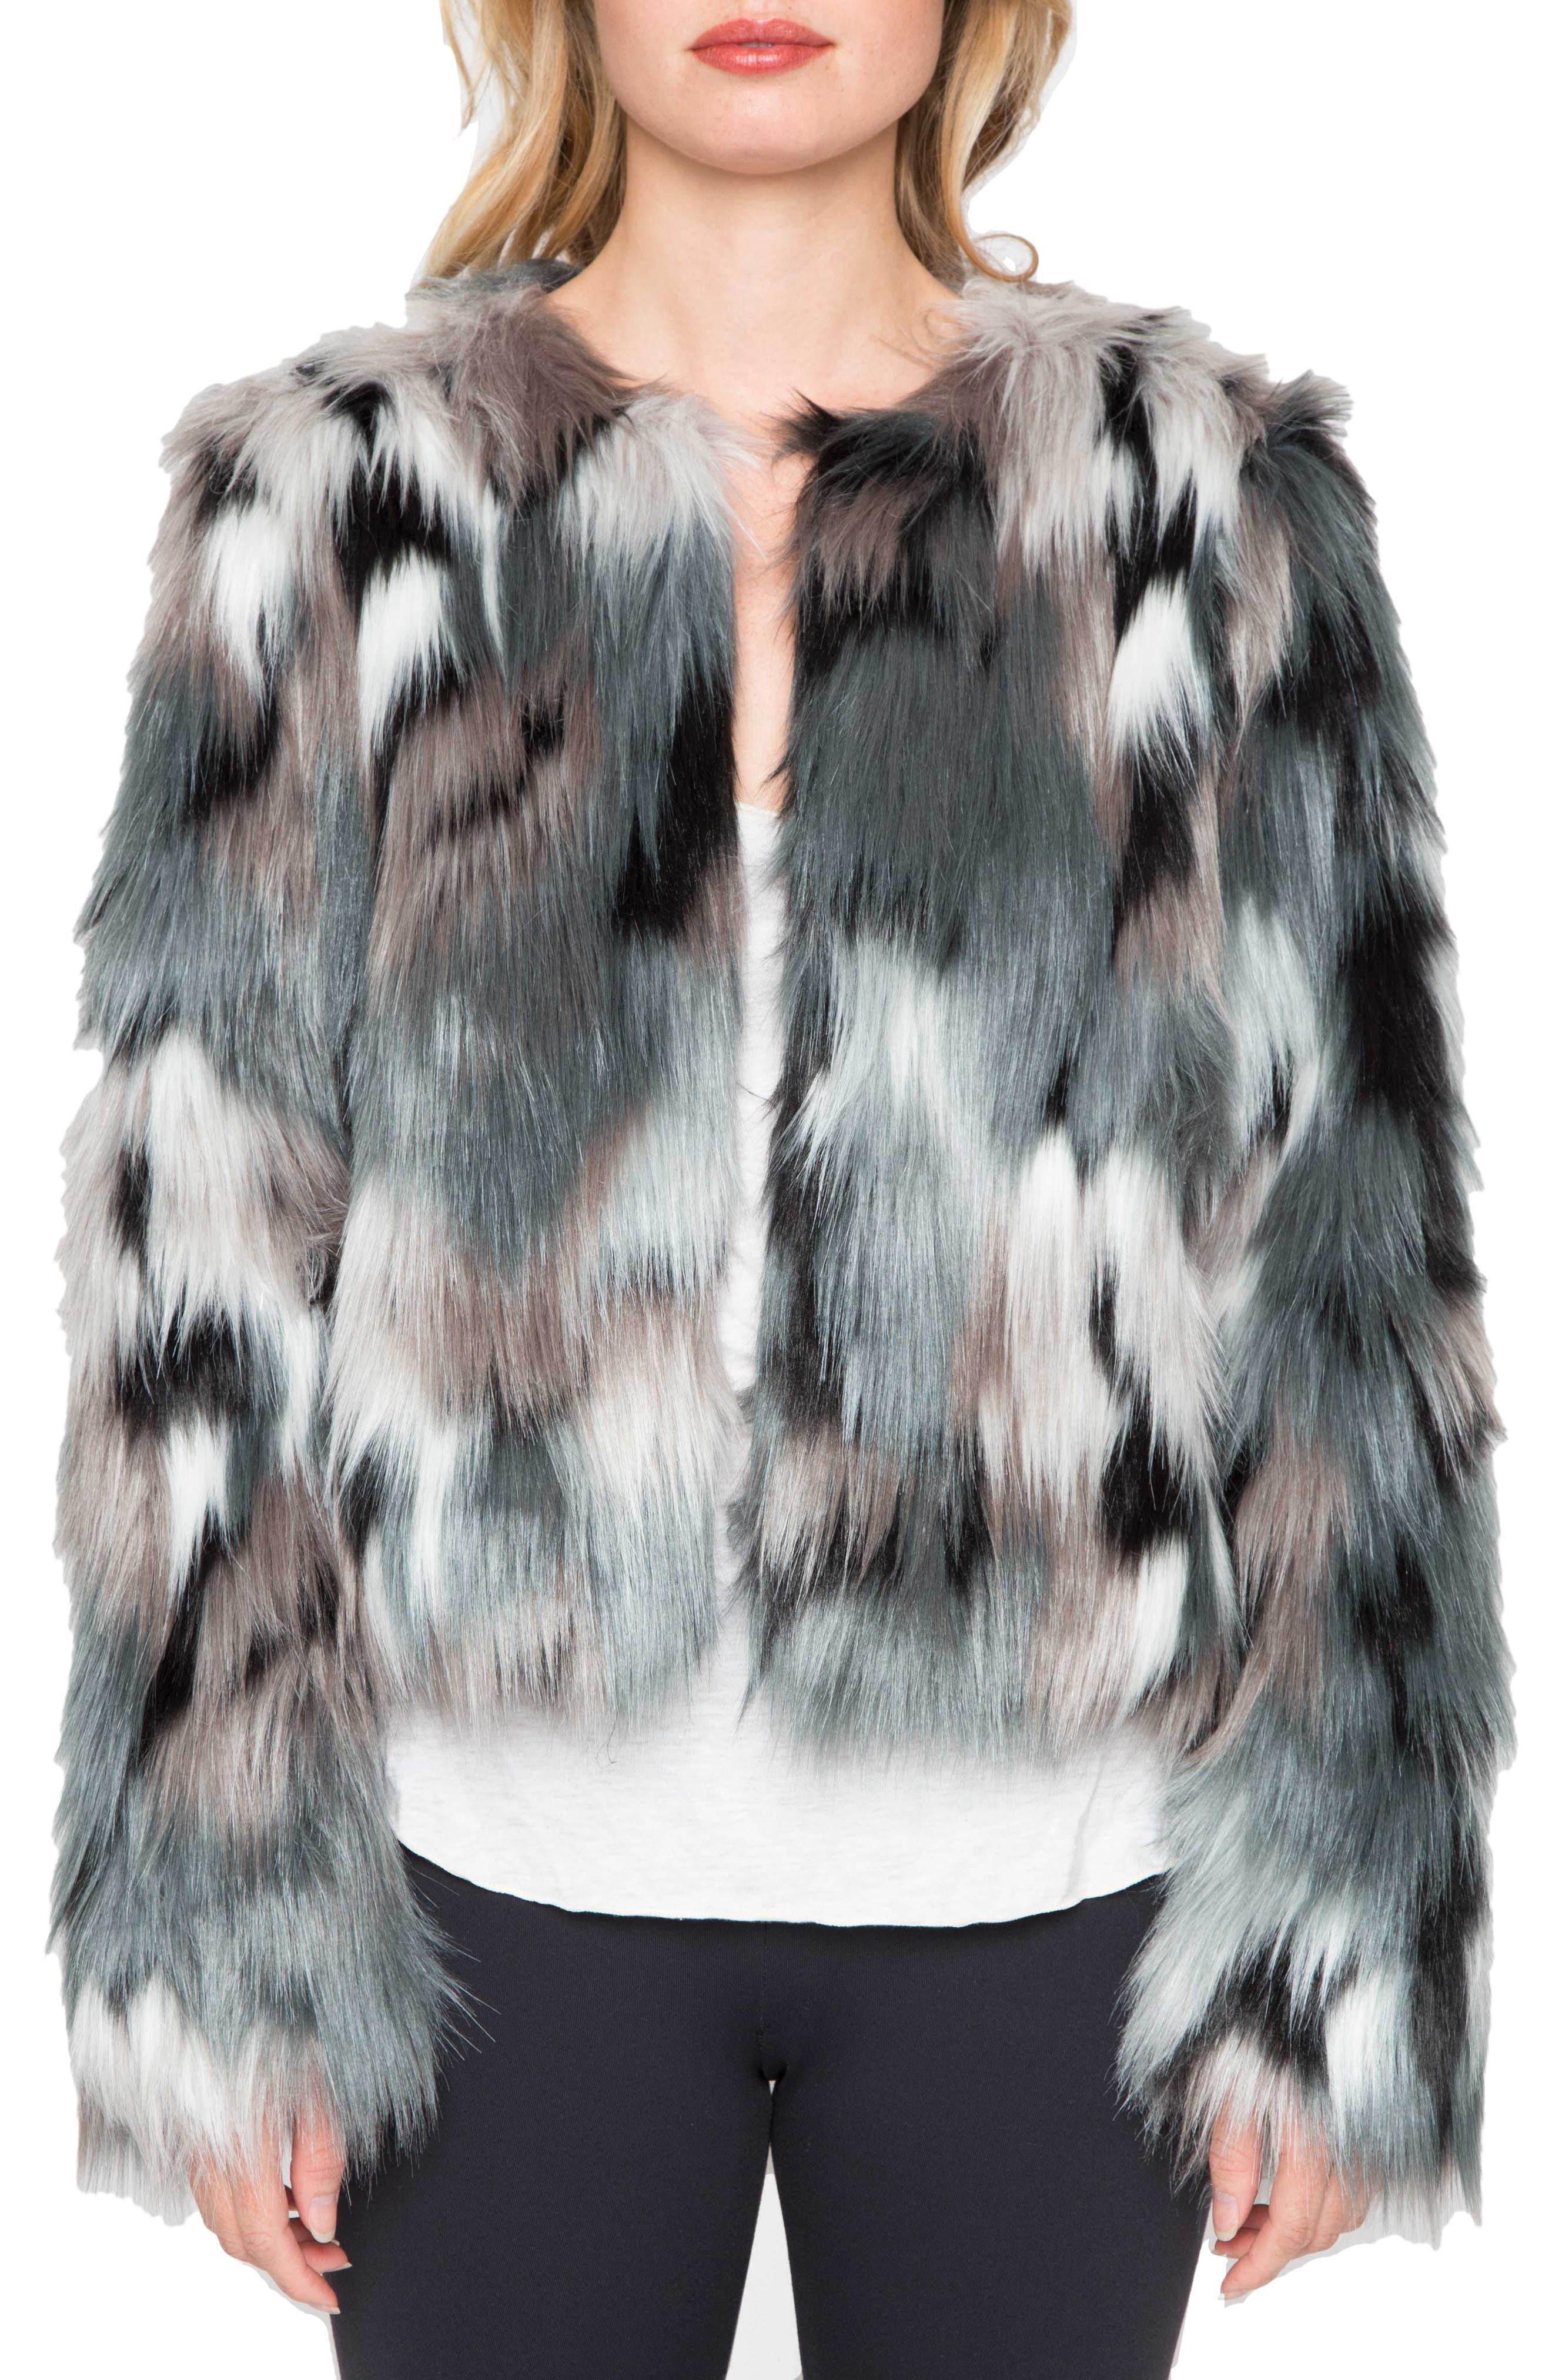 WILLOW & CLAY Faux Fur Jacket, Main, color, 445